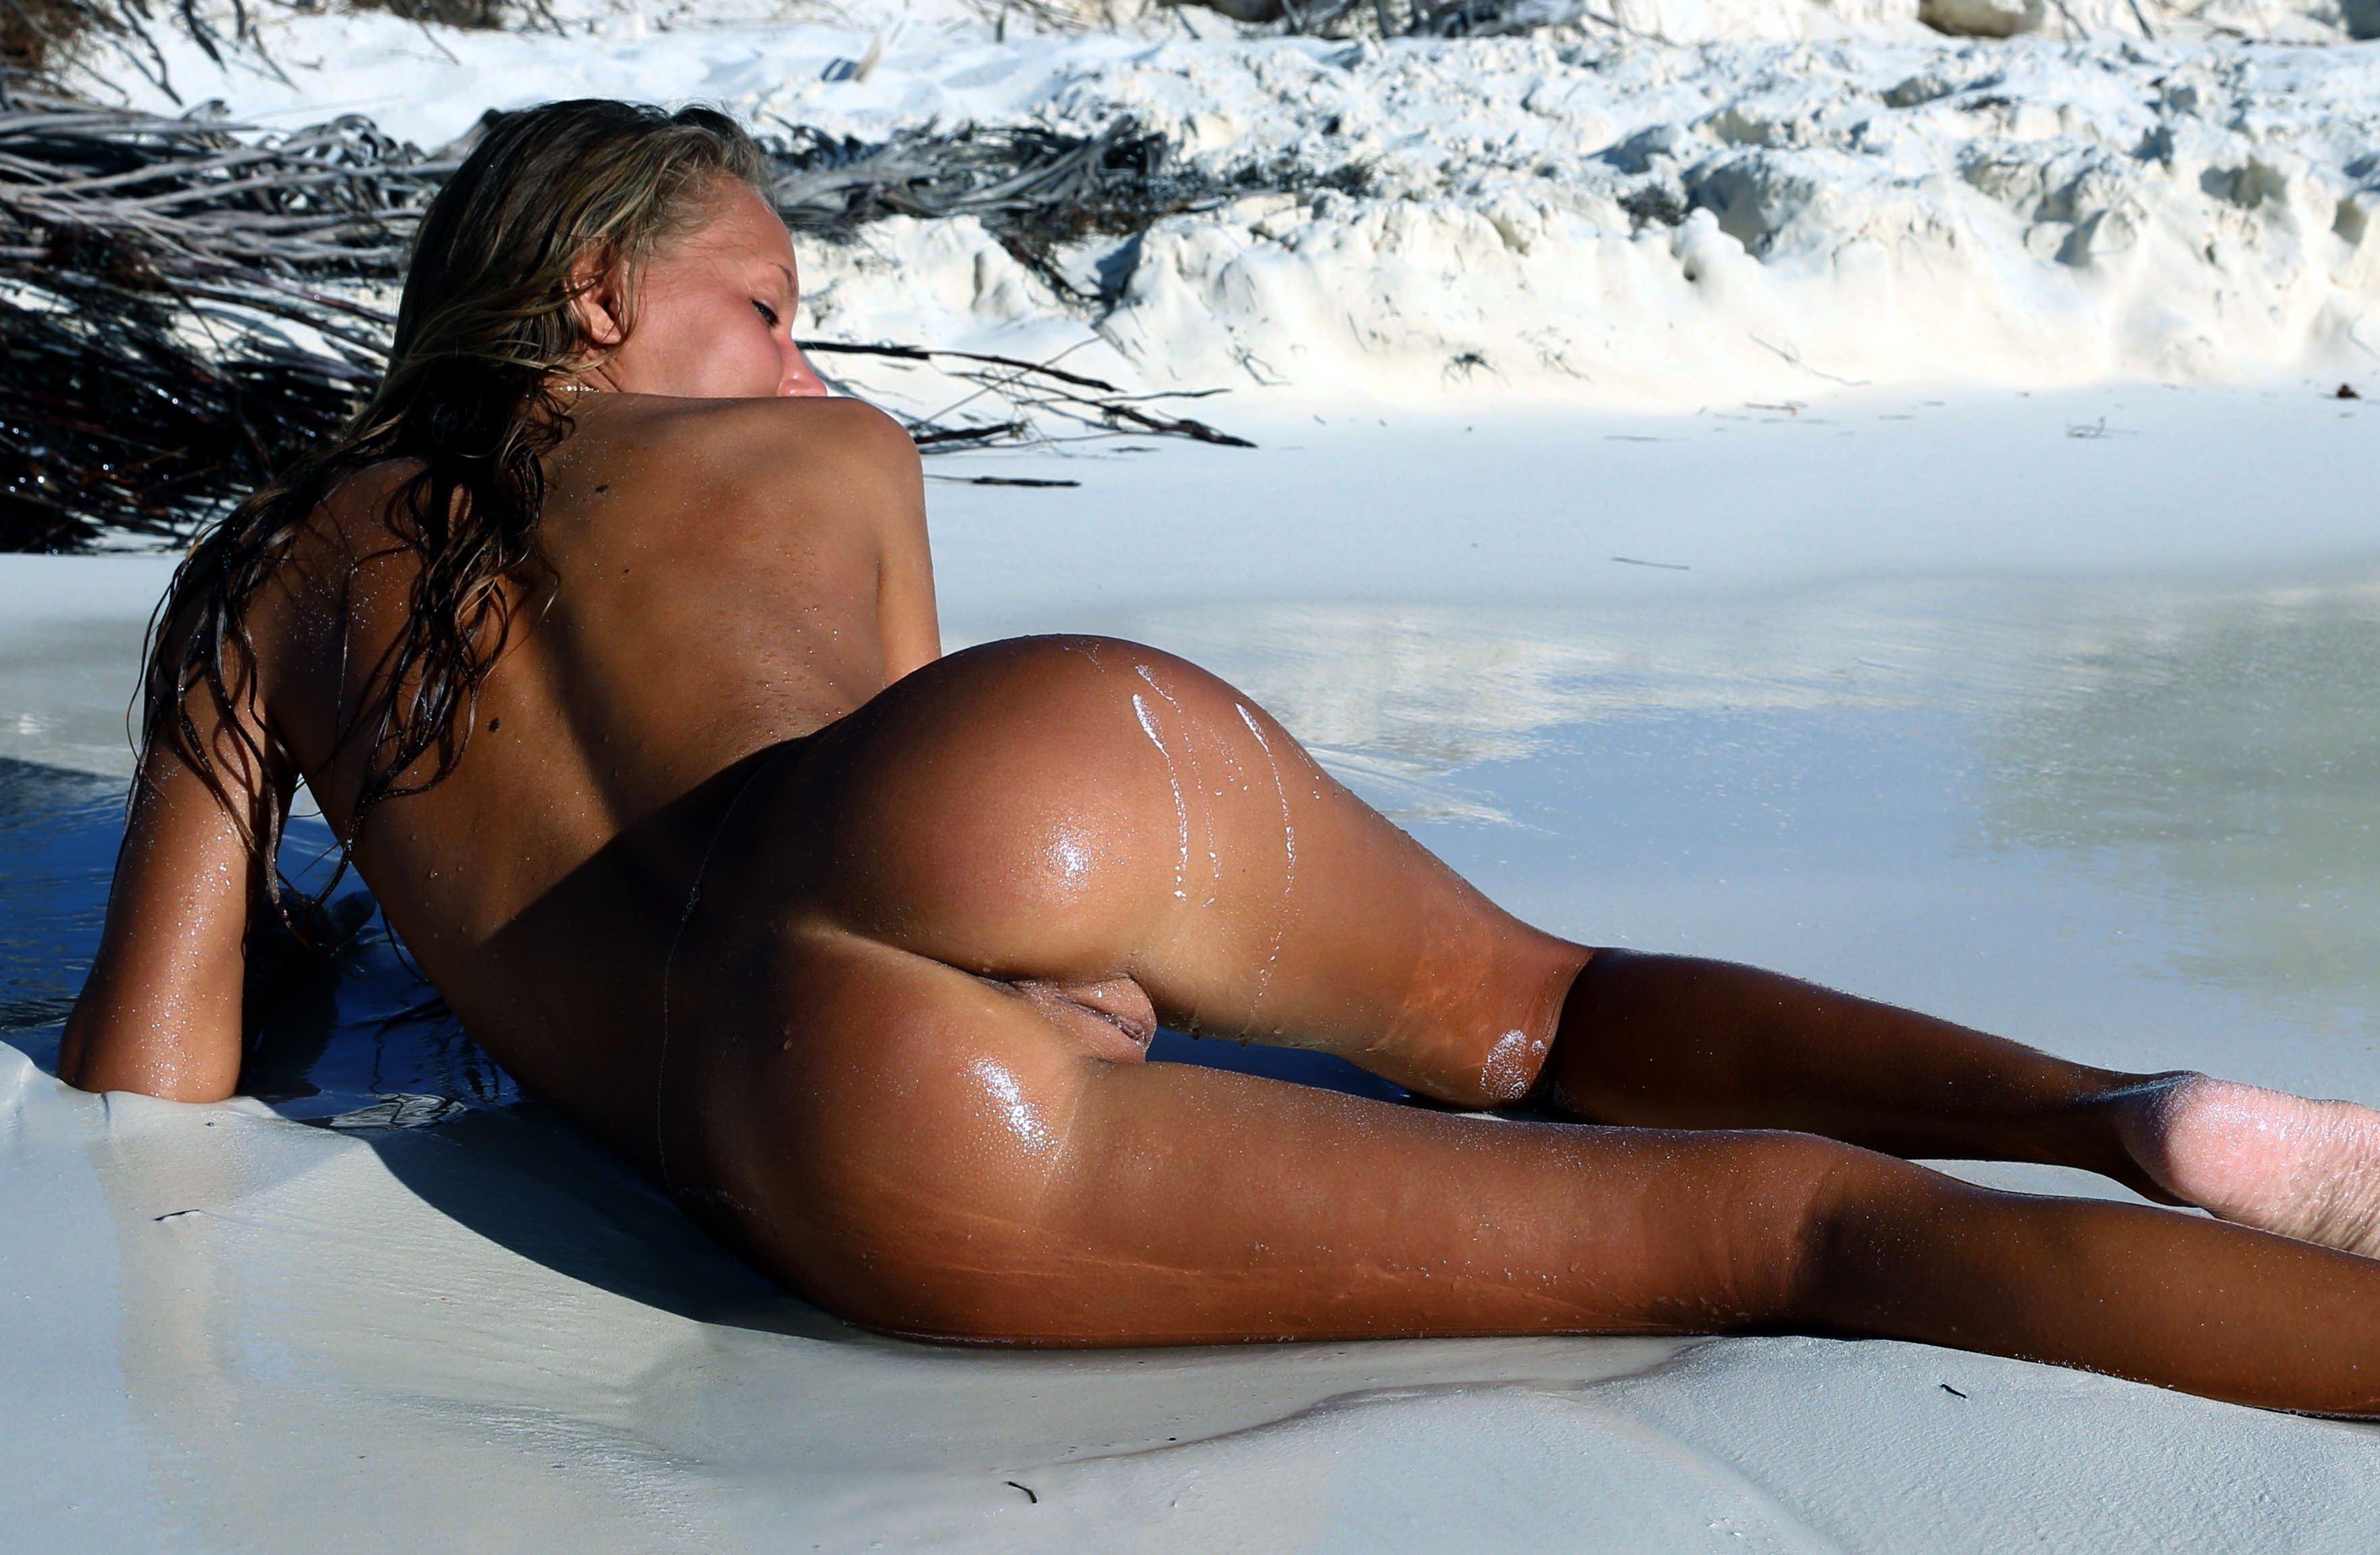 Love to tan naked like her